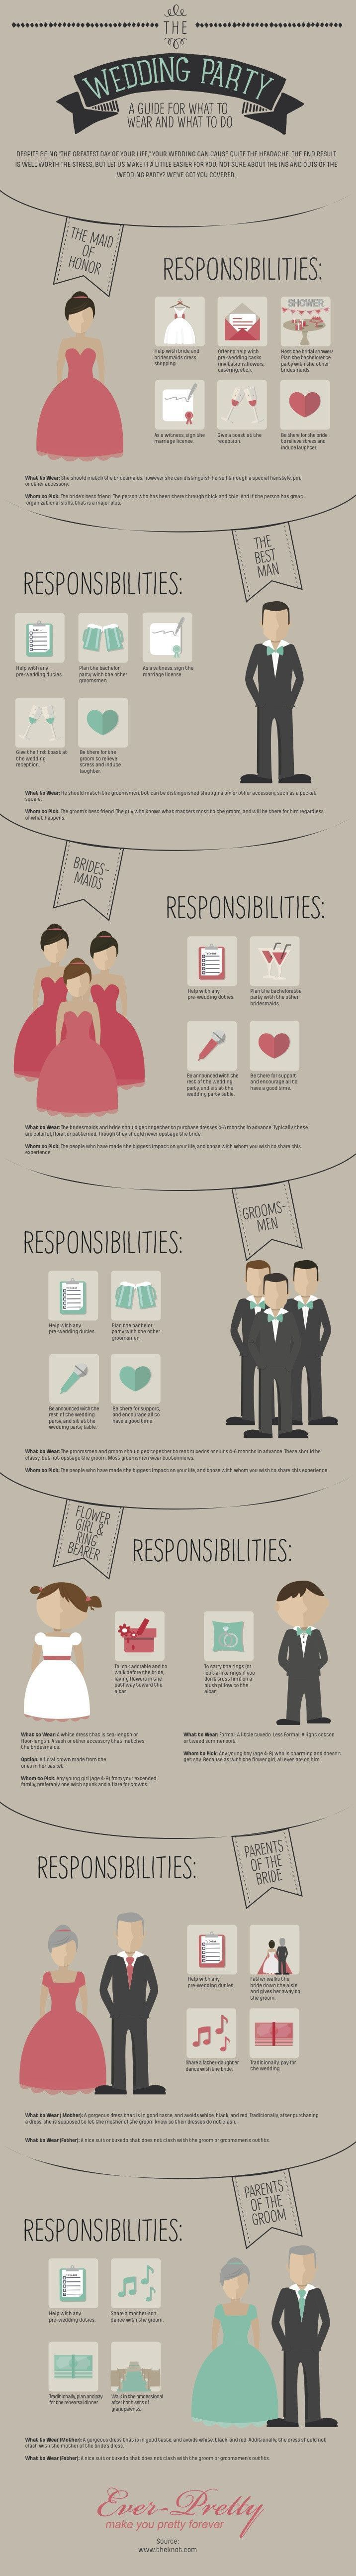 The Wedding Party   #Infographic #Wedding #party #weddinginfographic